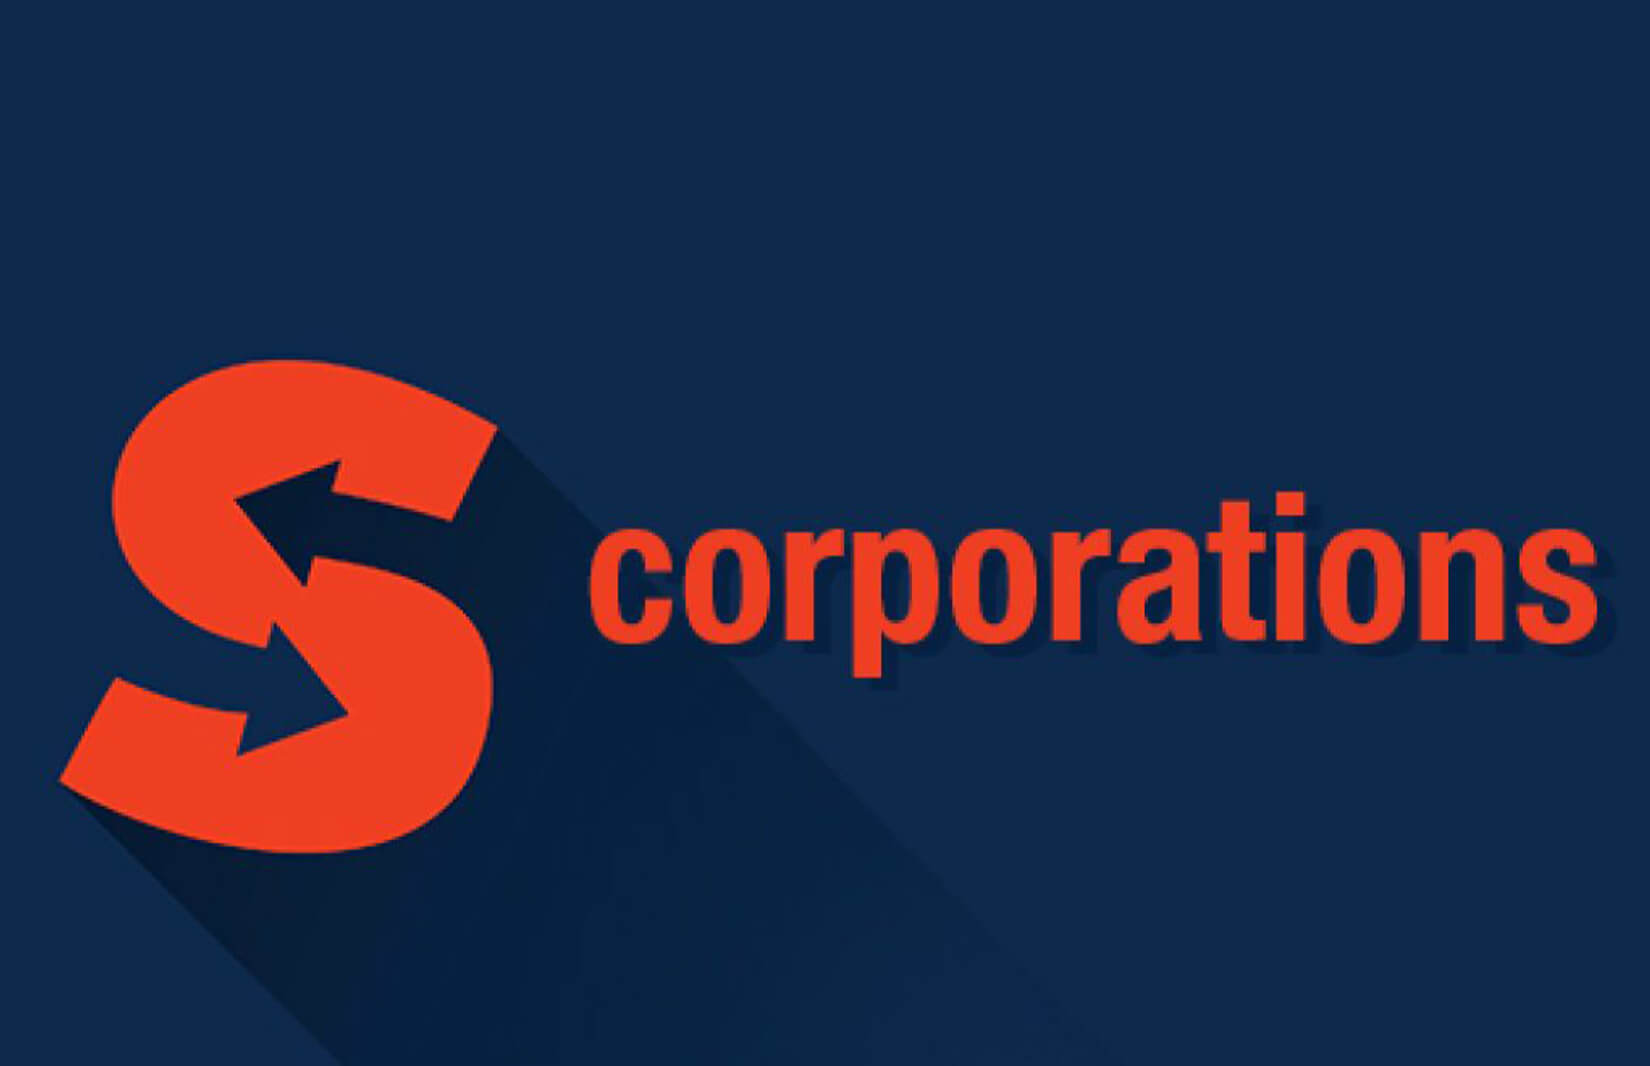 Assessing the S corporation